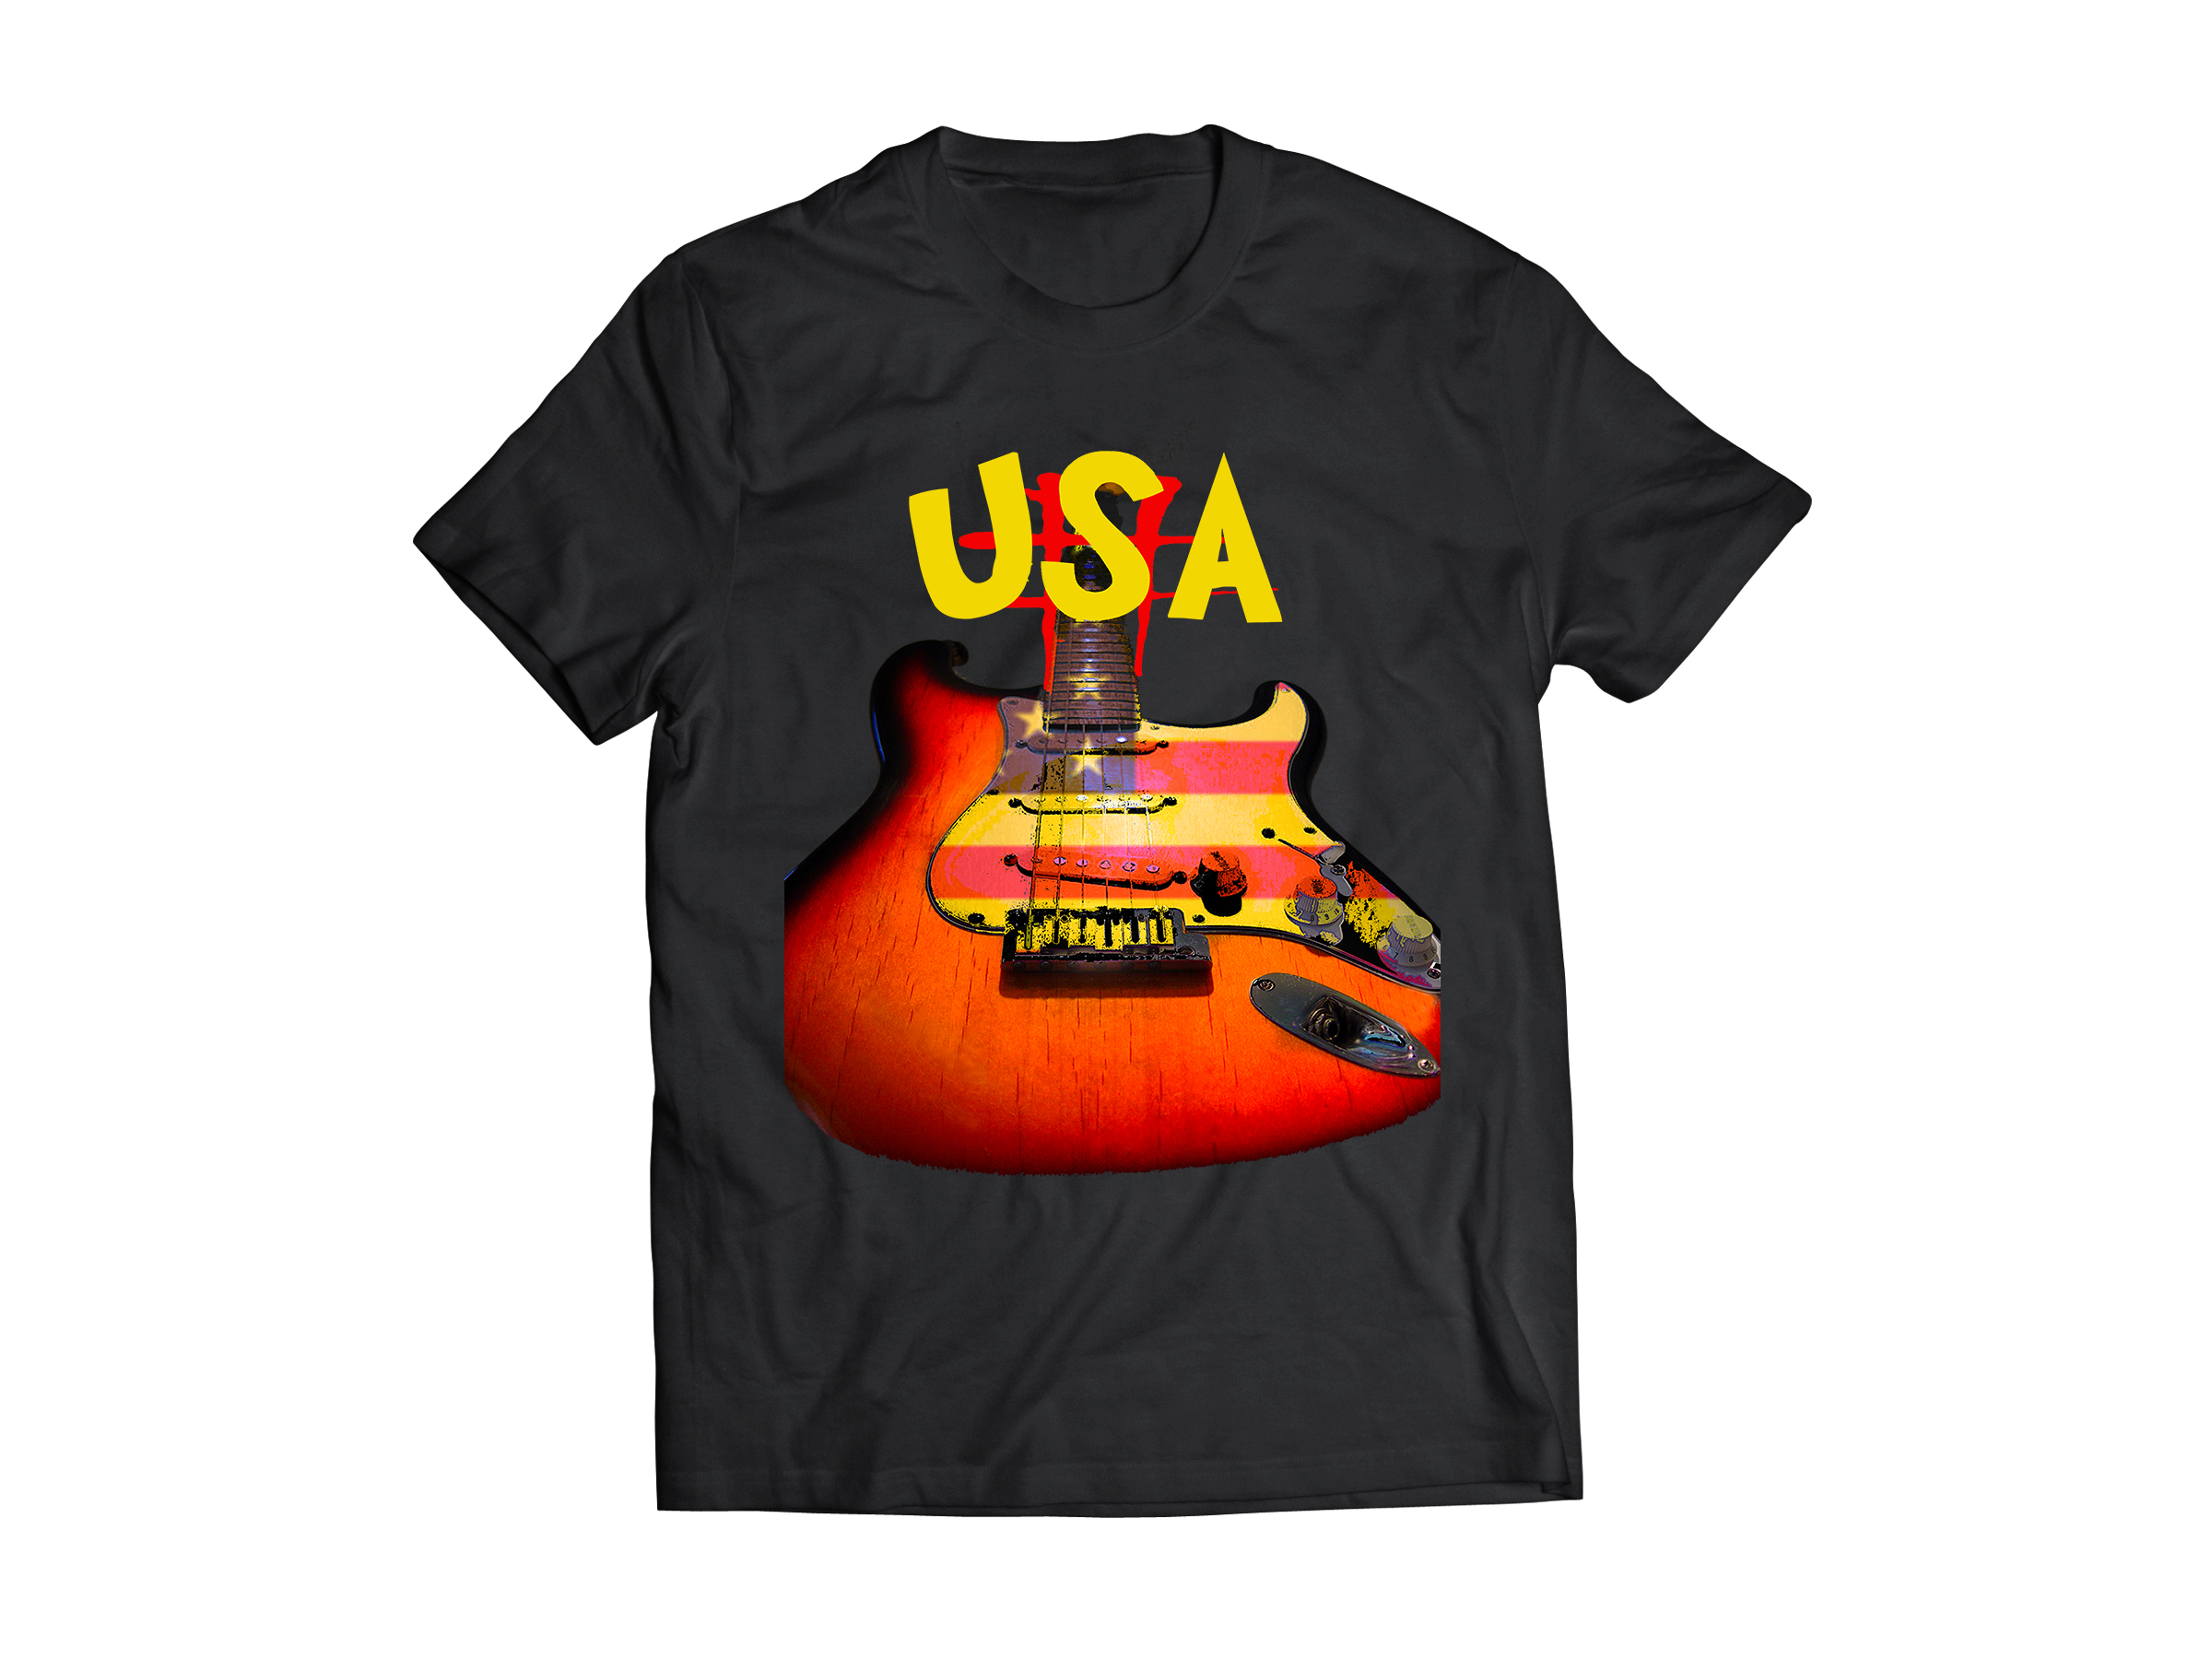 Fender Stratocater T-Shirt USA